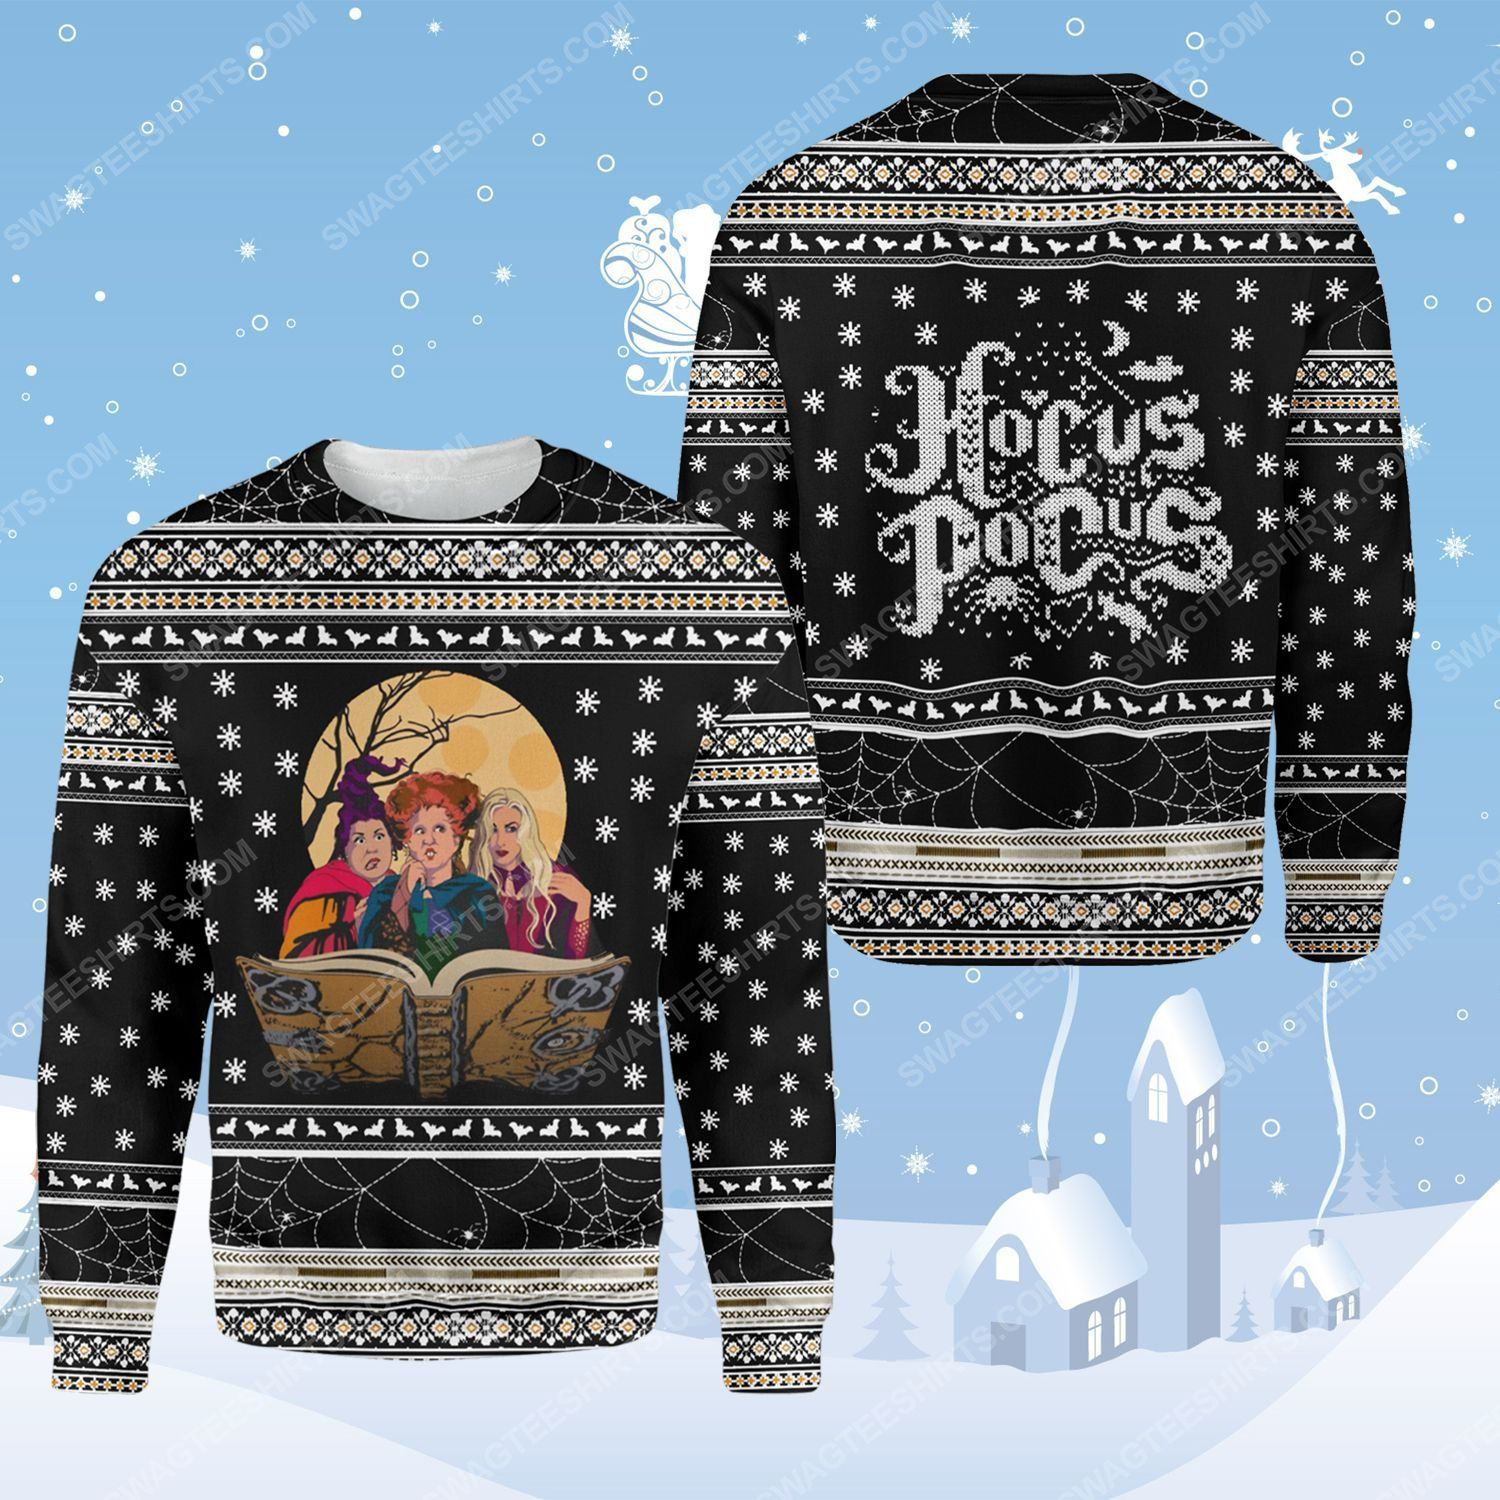 Hocus pocus witches ugly christmas sweater - Copy (3)